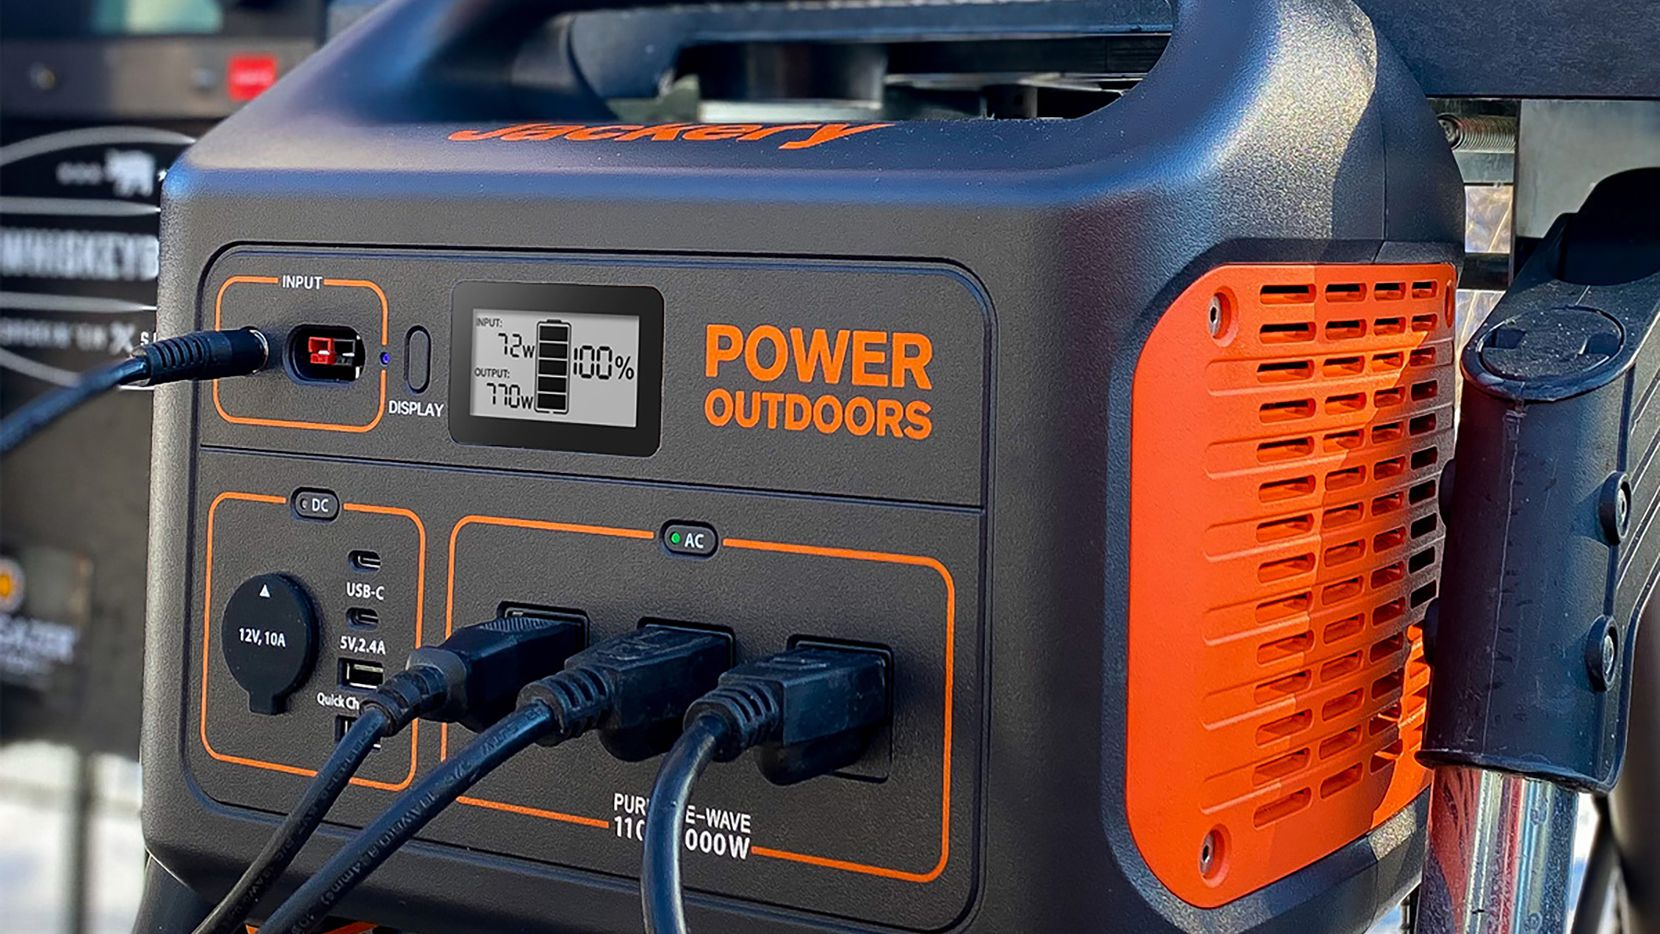 The Jackery Explorer 1000 Portable Power Station